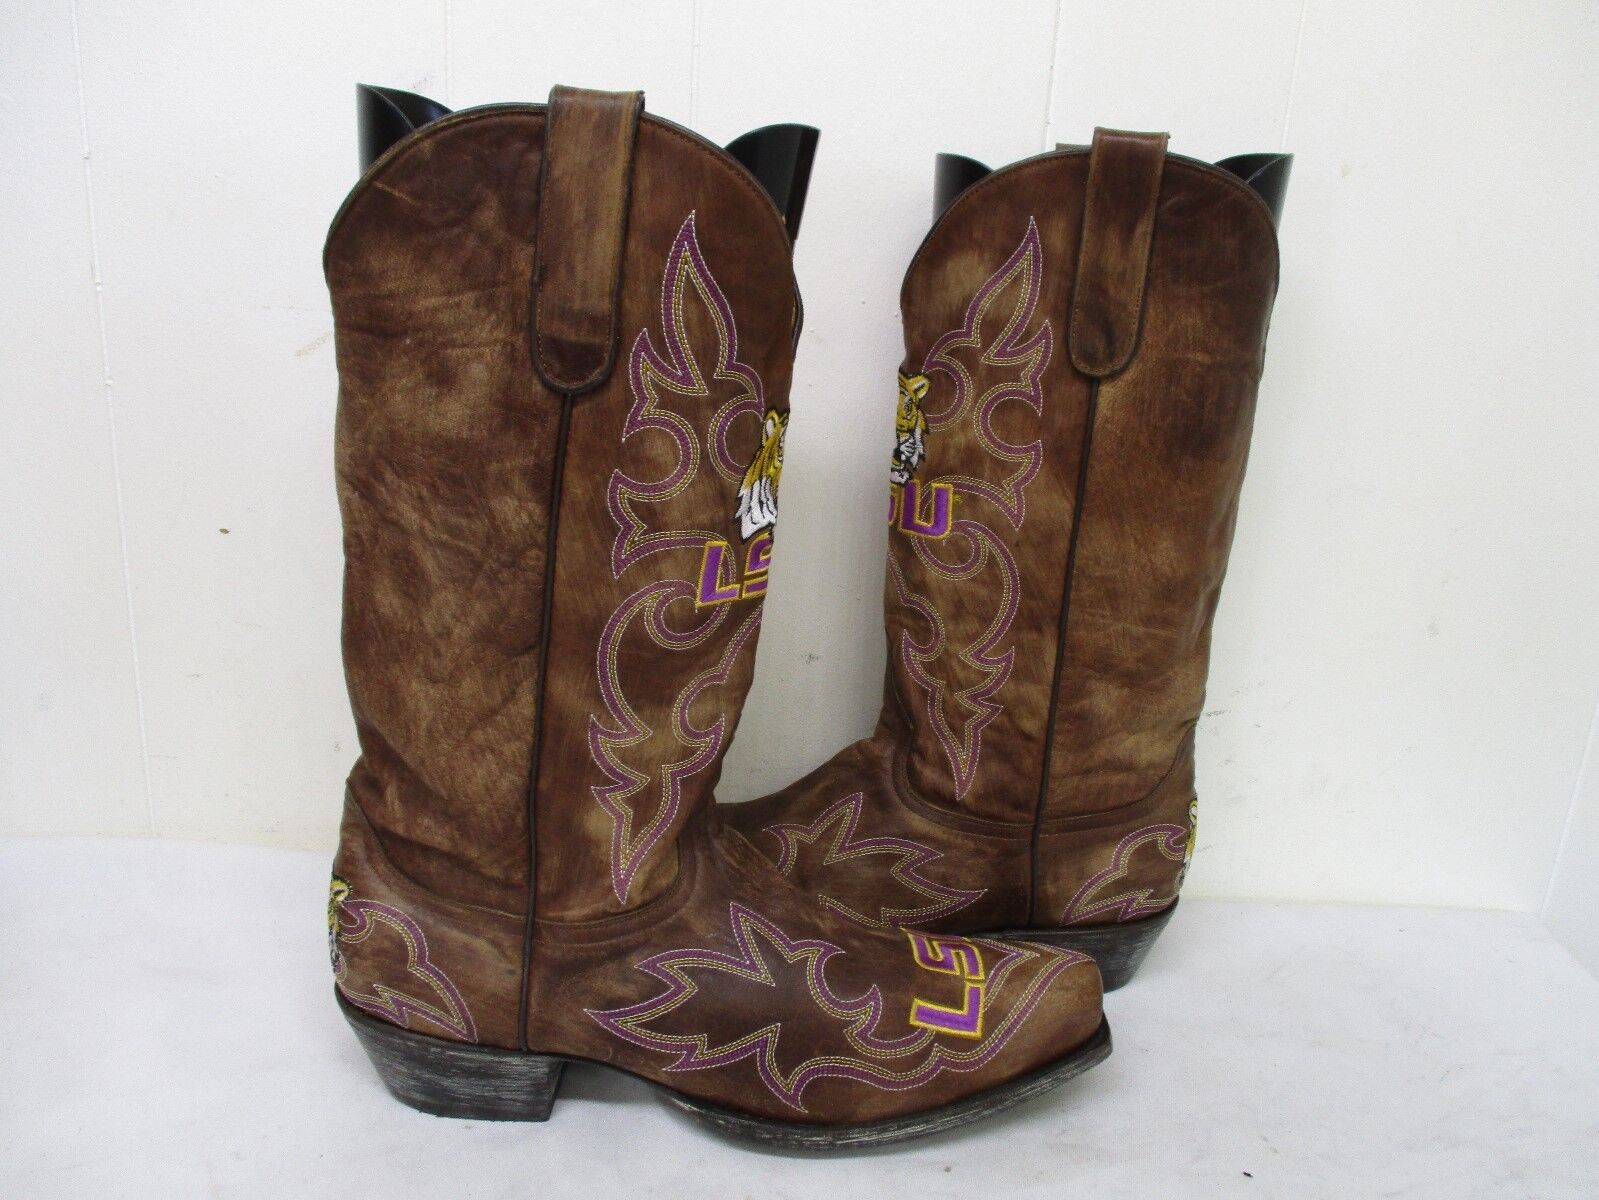 Gameday Boots Distressed Brown Leather LSU Cowboy Boots Size 9.5 D Style 0412